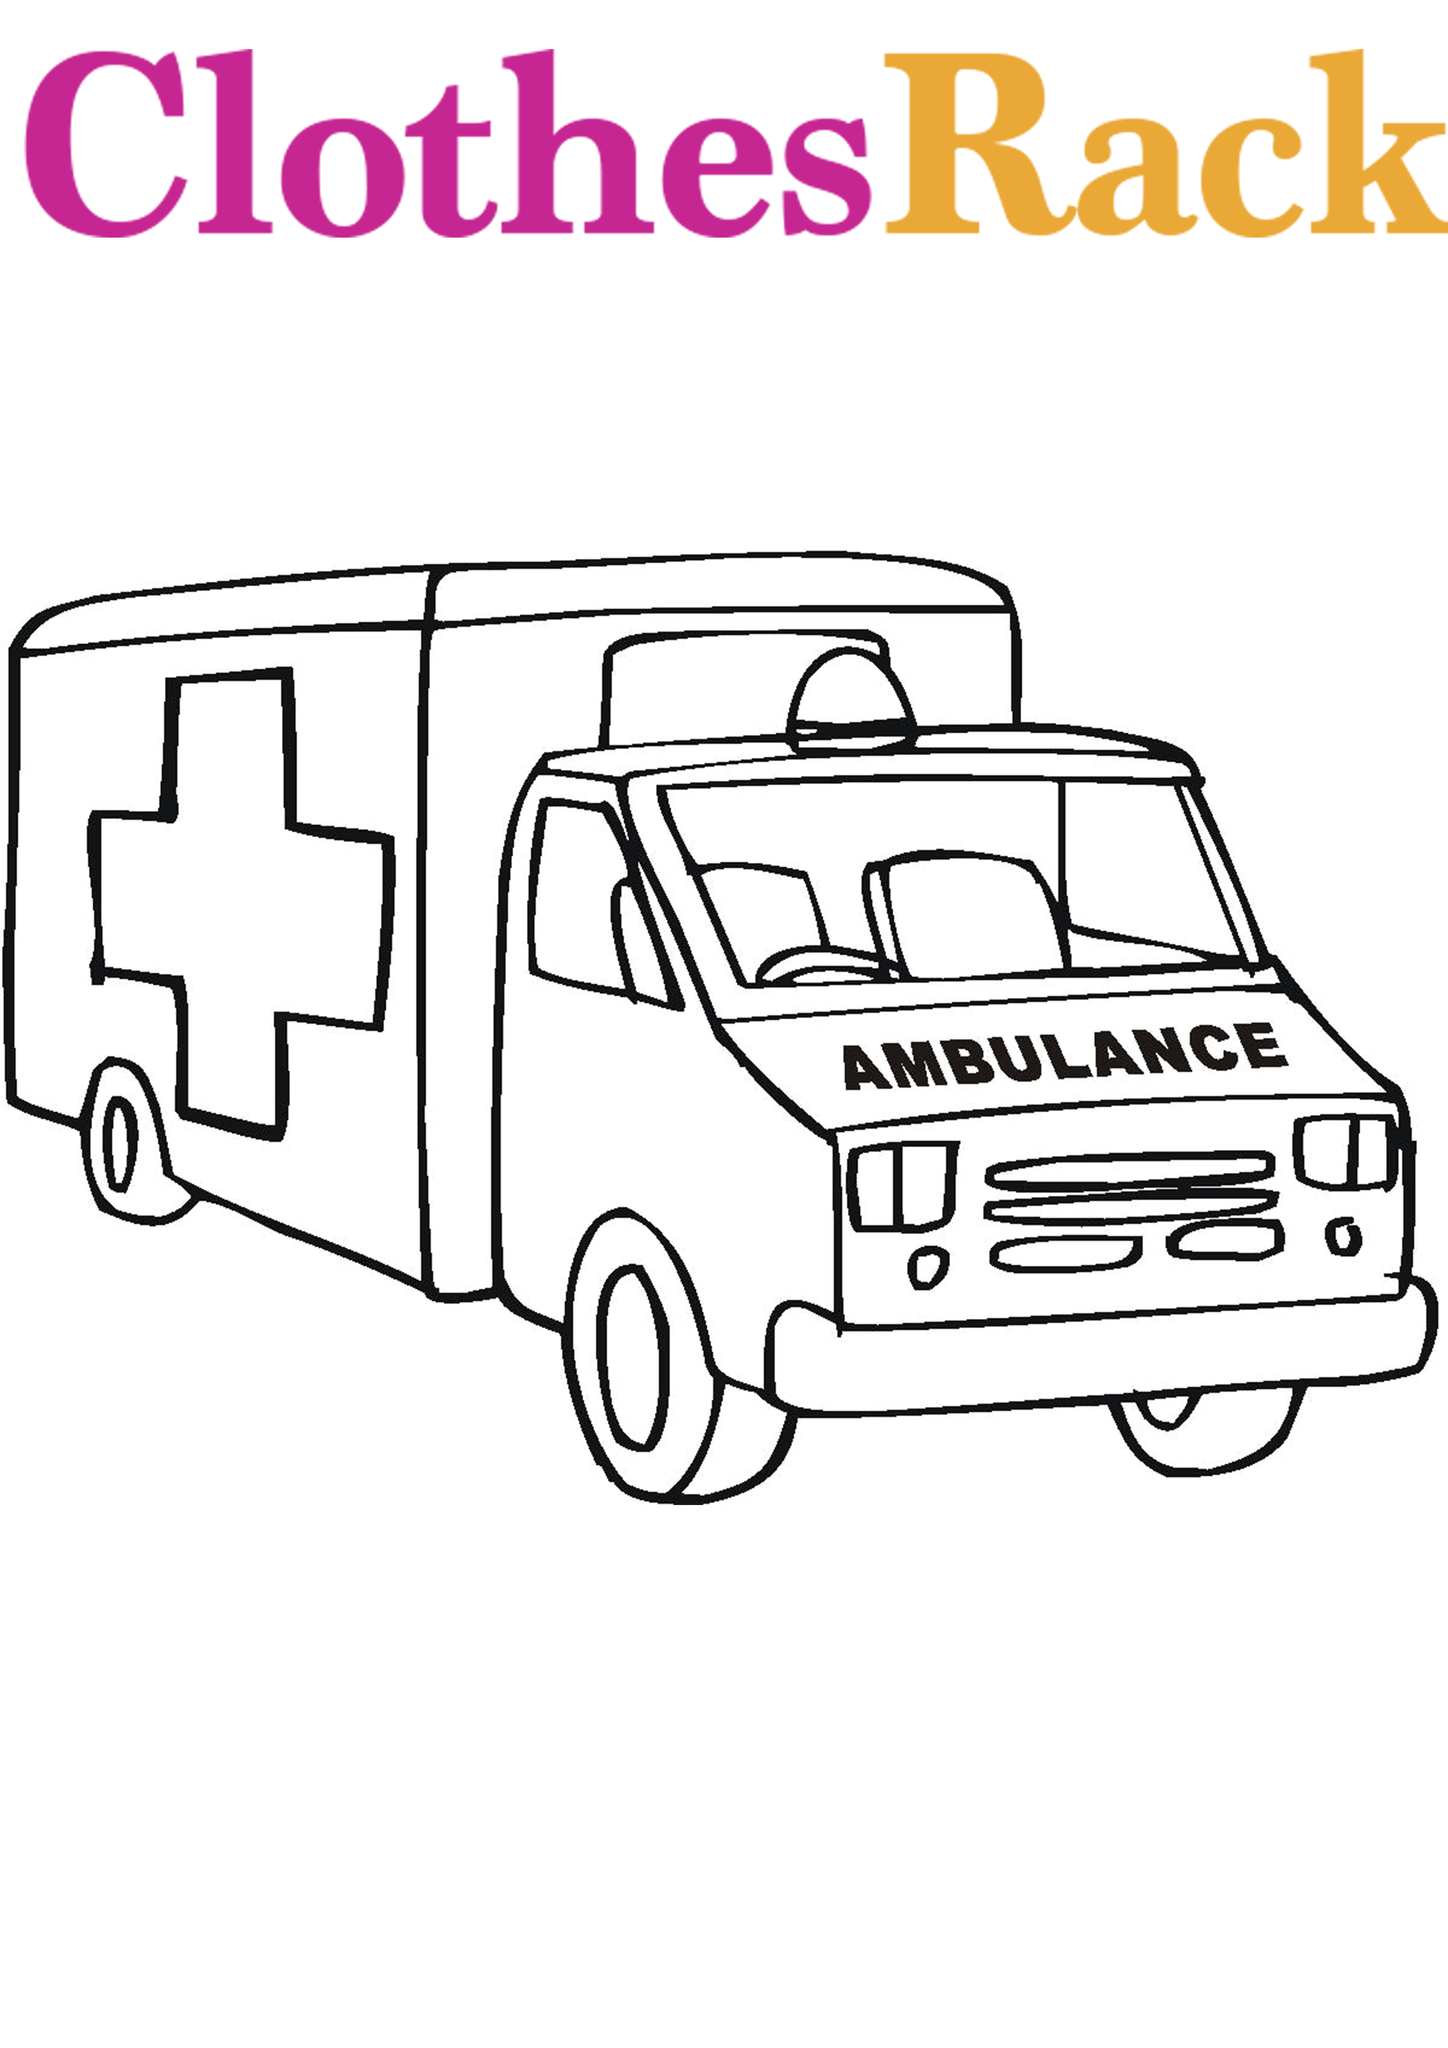 Ambulance Colouring Page Ambulance Colouring Pictures Ambulance Pictures To Colour Coloring Pages For Kids Colouring Pages Ambulance Pictures